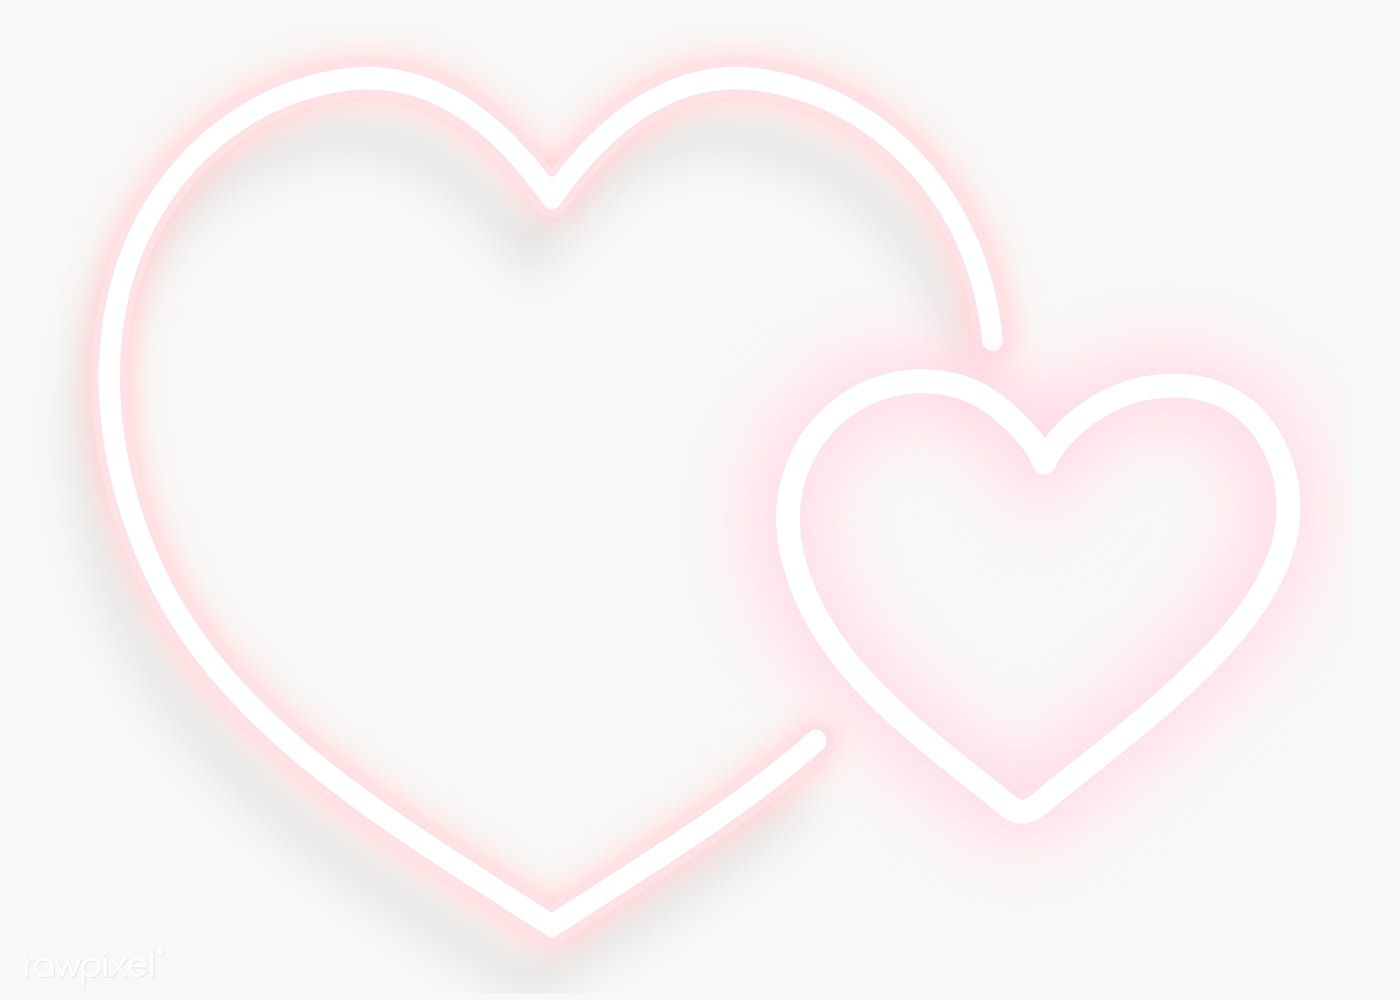 Pink Double Hearts Transparent Png Free Image By Rawpixel Com Adj Valentines Frames Valentines Design Stock Images Free